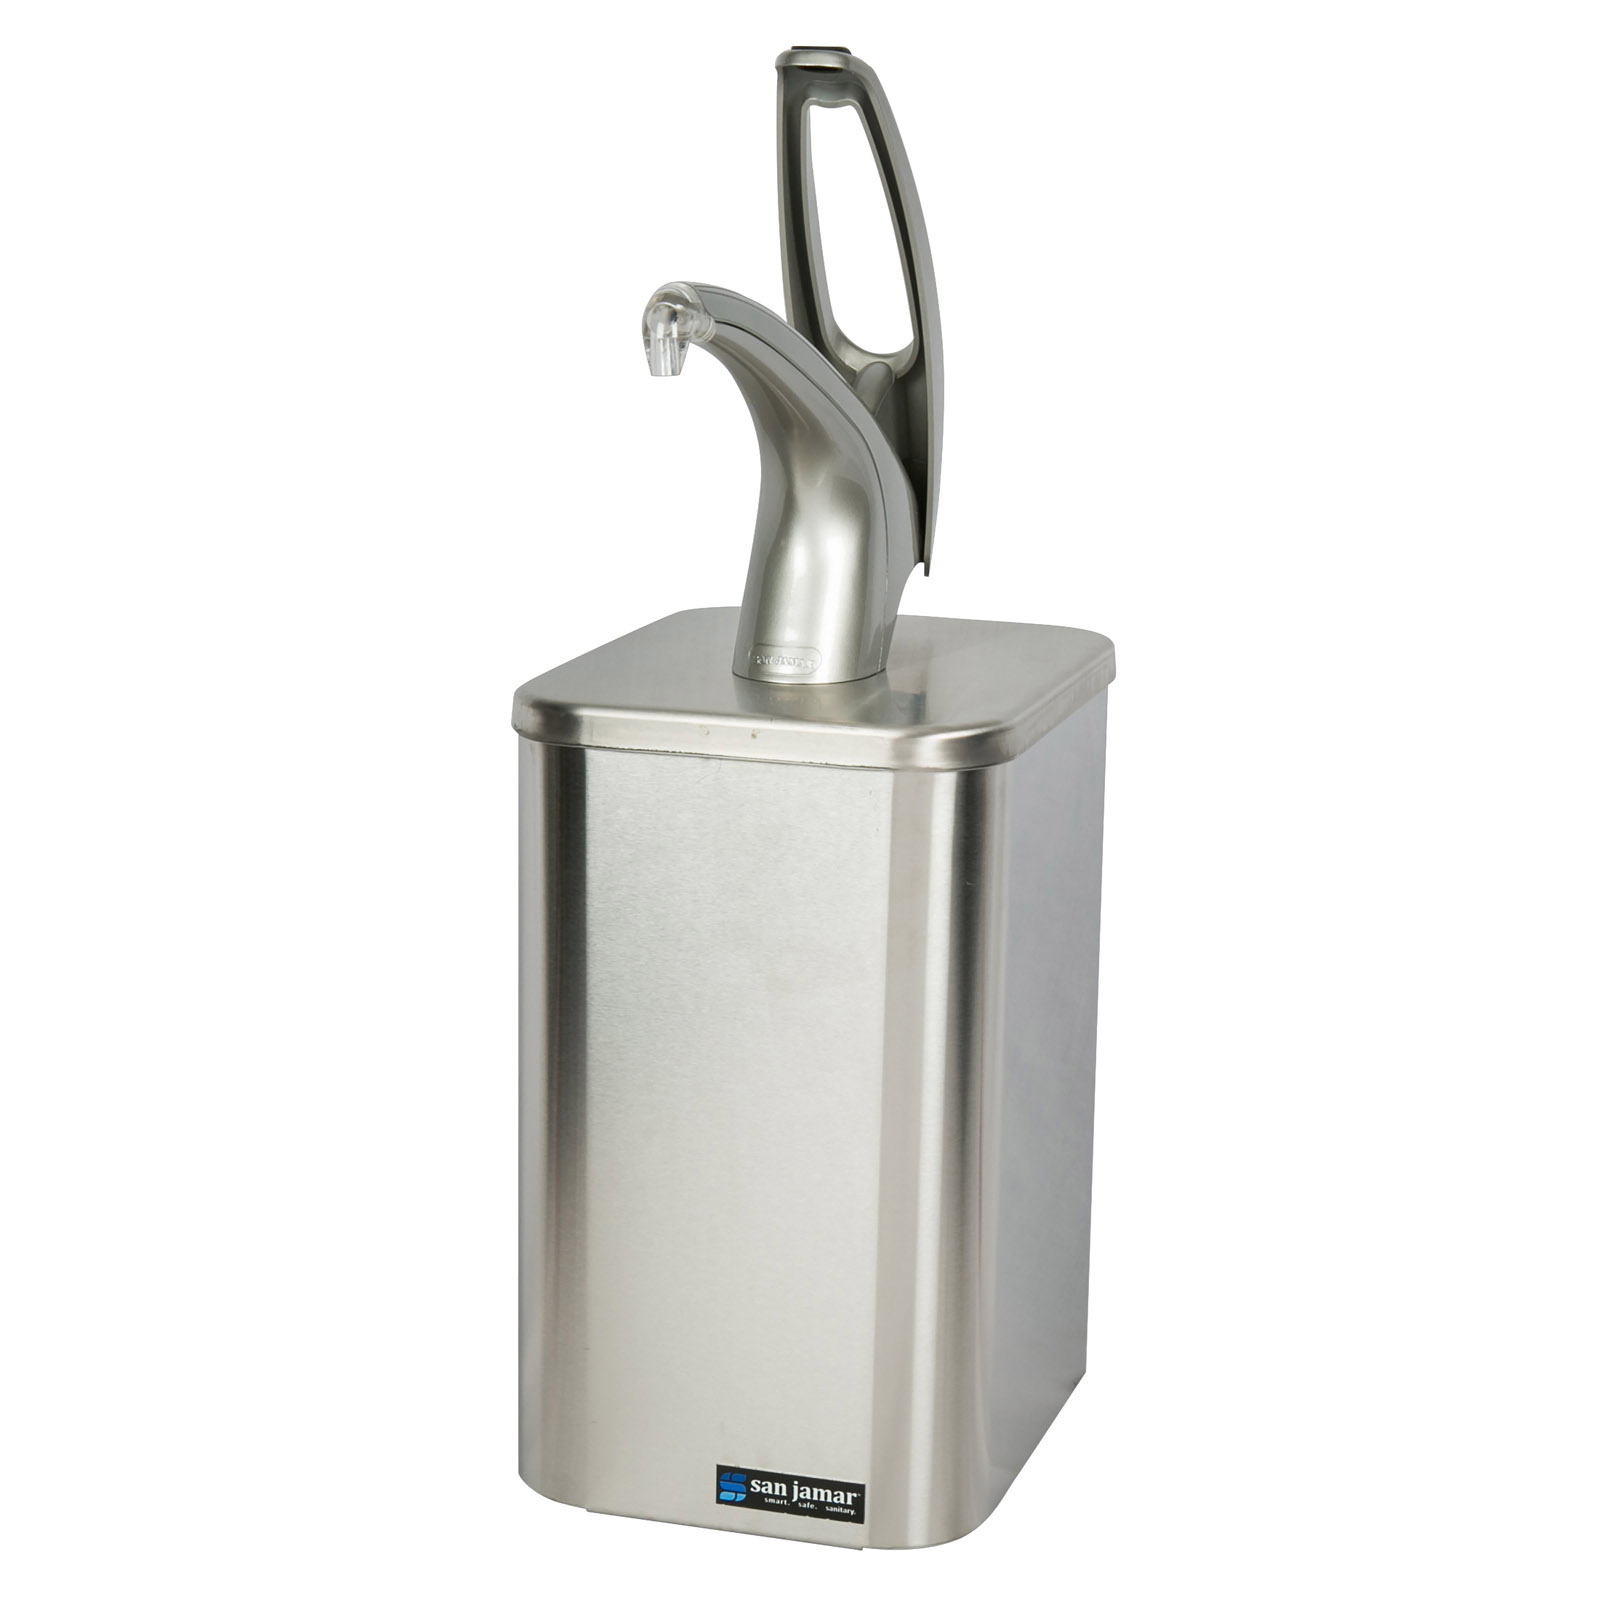 San Jamar P4900 condiment dispenser pump-style